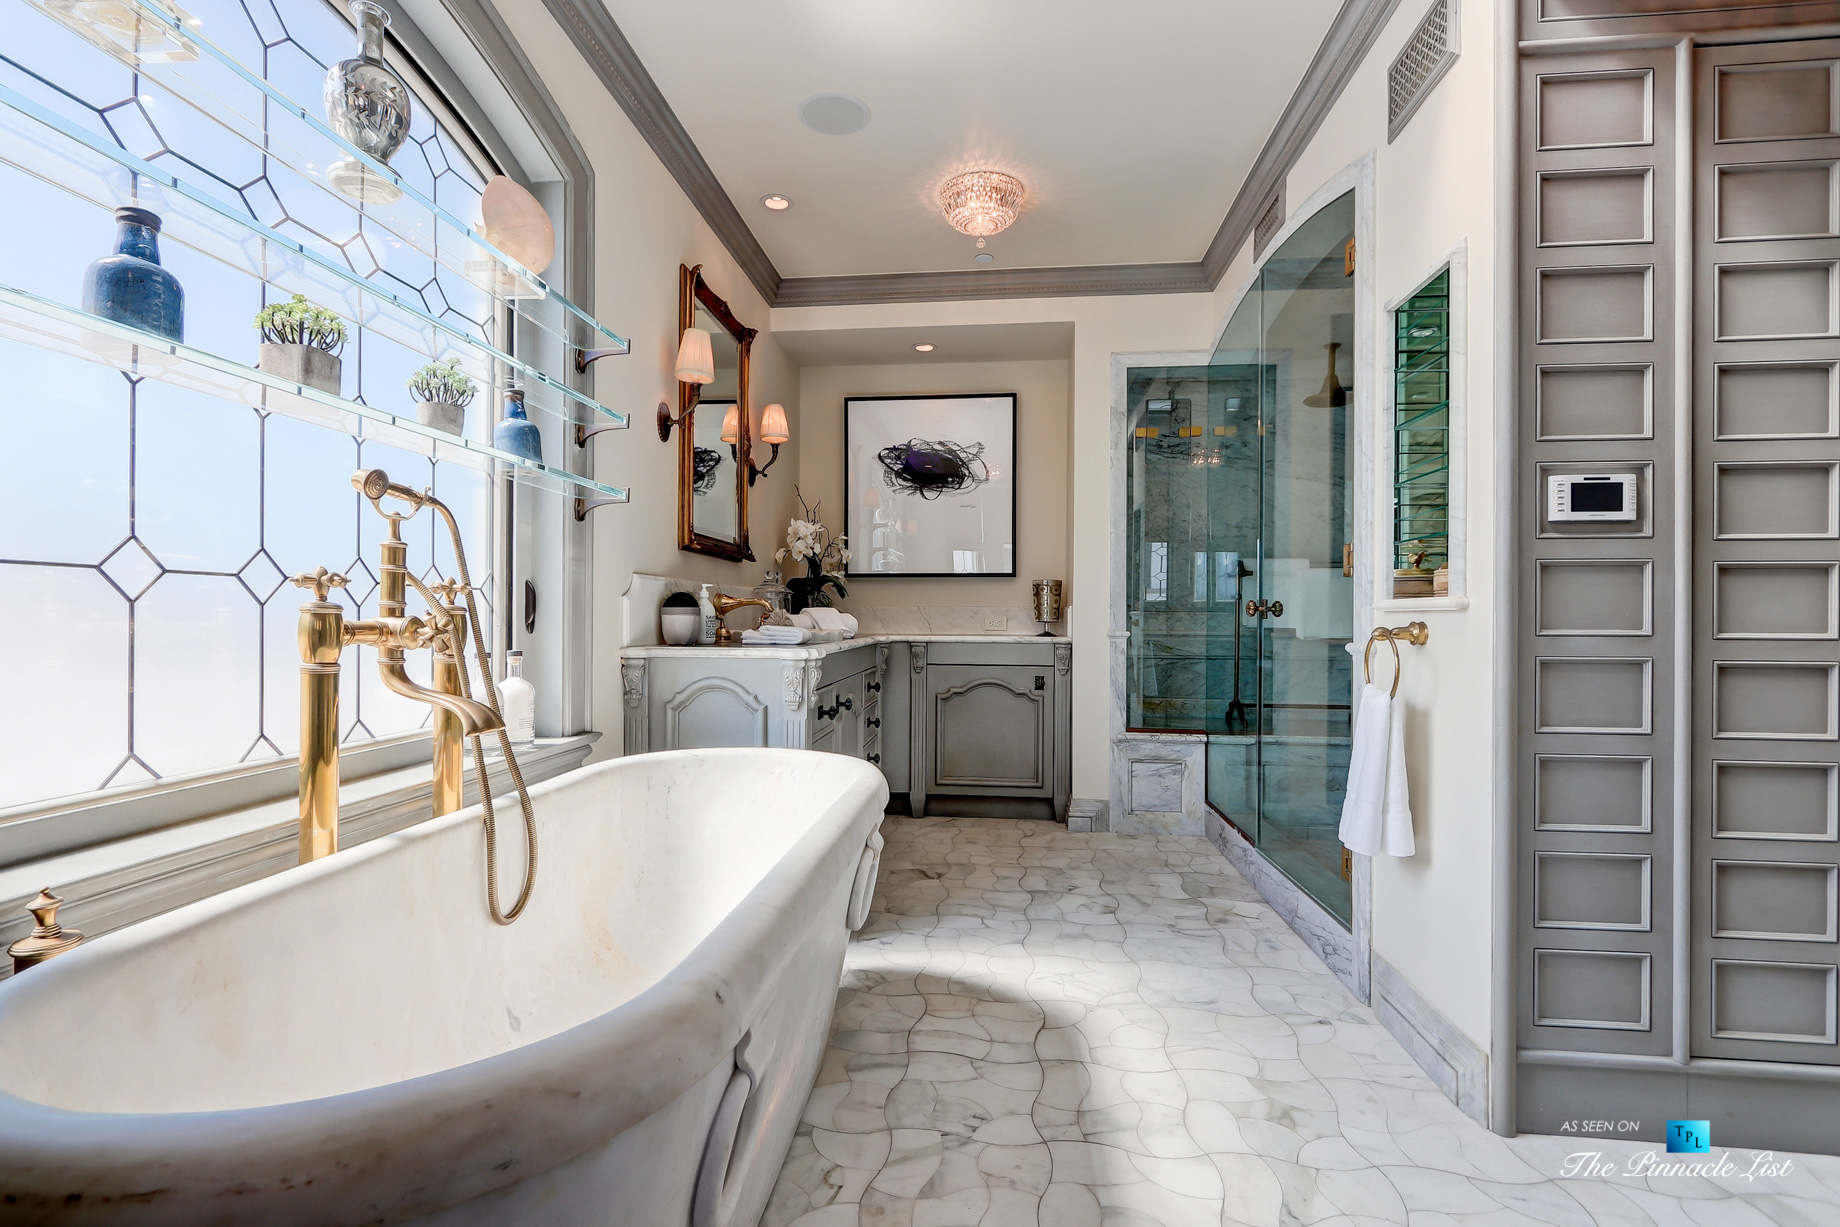 Oceanfront Luxury Living Exemplified - 2806 The Strand, Hermosa Beach, CA, USA - Master Bathroom